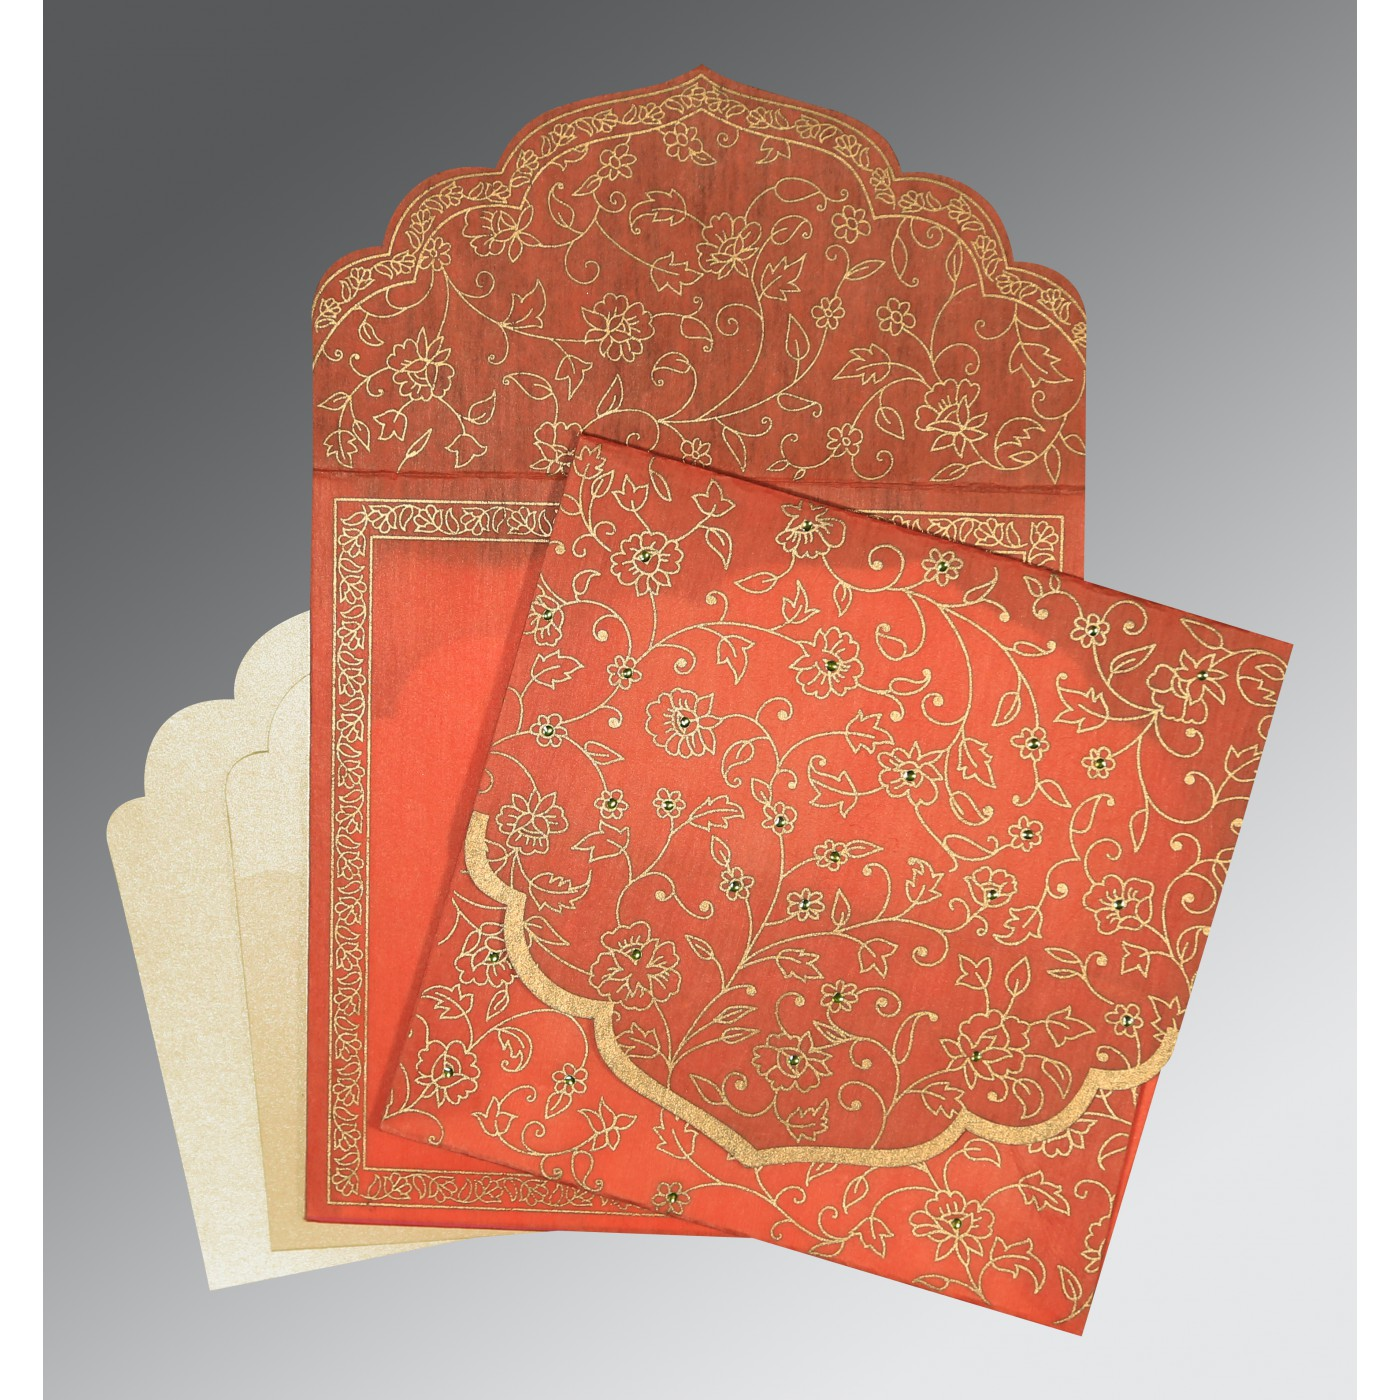 CORAL WOOLY FLORAL THEMED - SCREEN PRINTED WEDDING INVITATION : IN ...